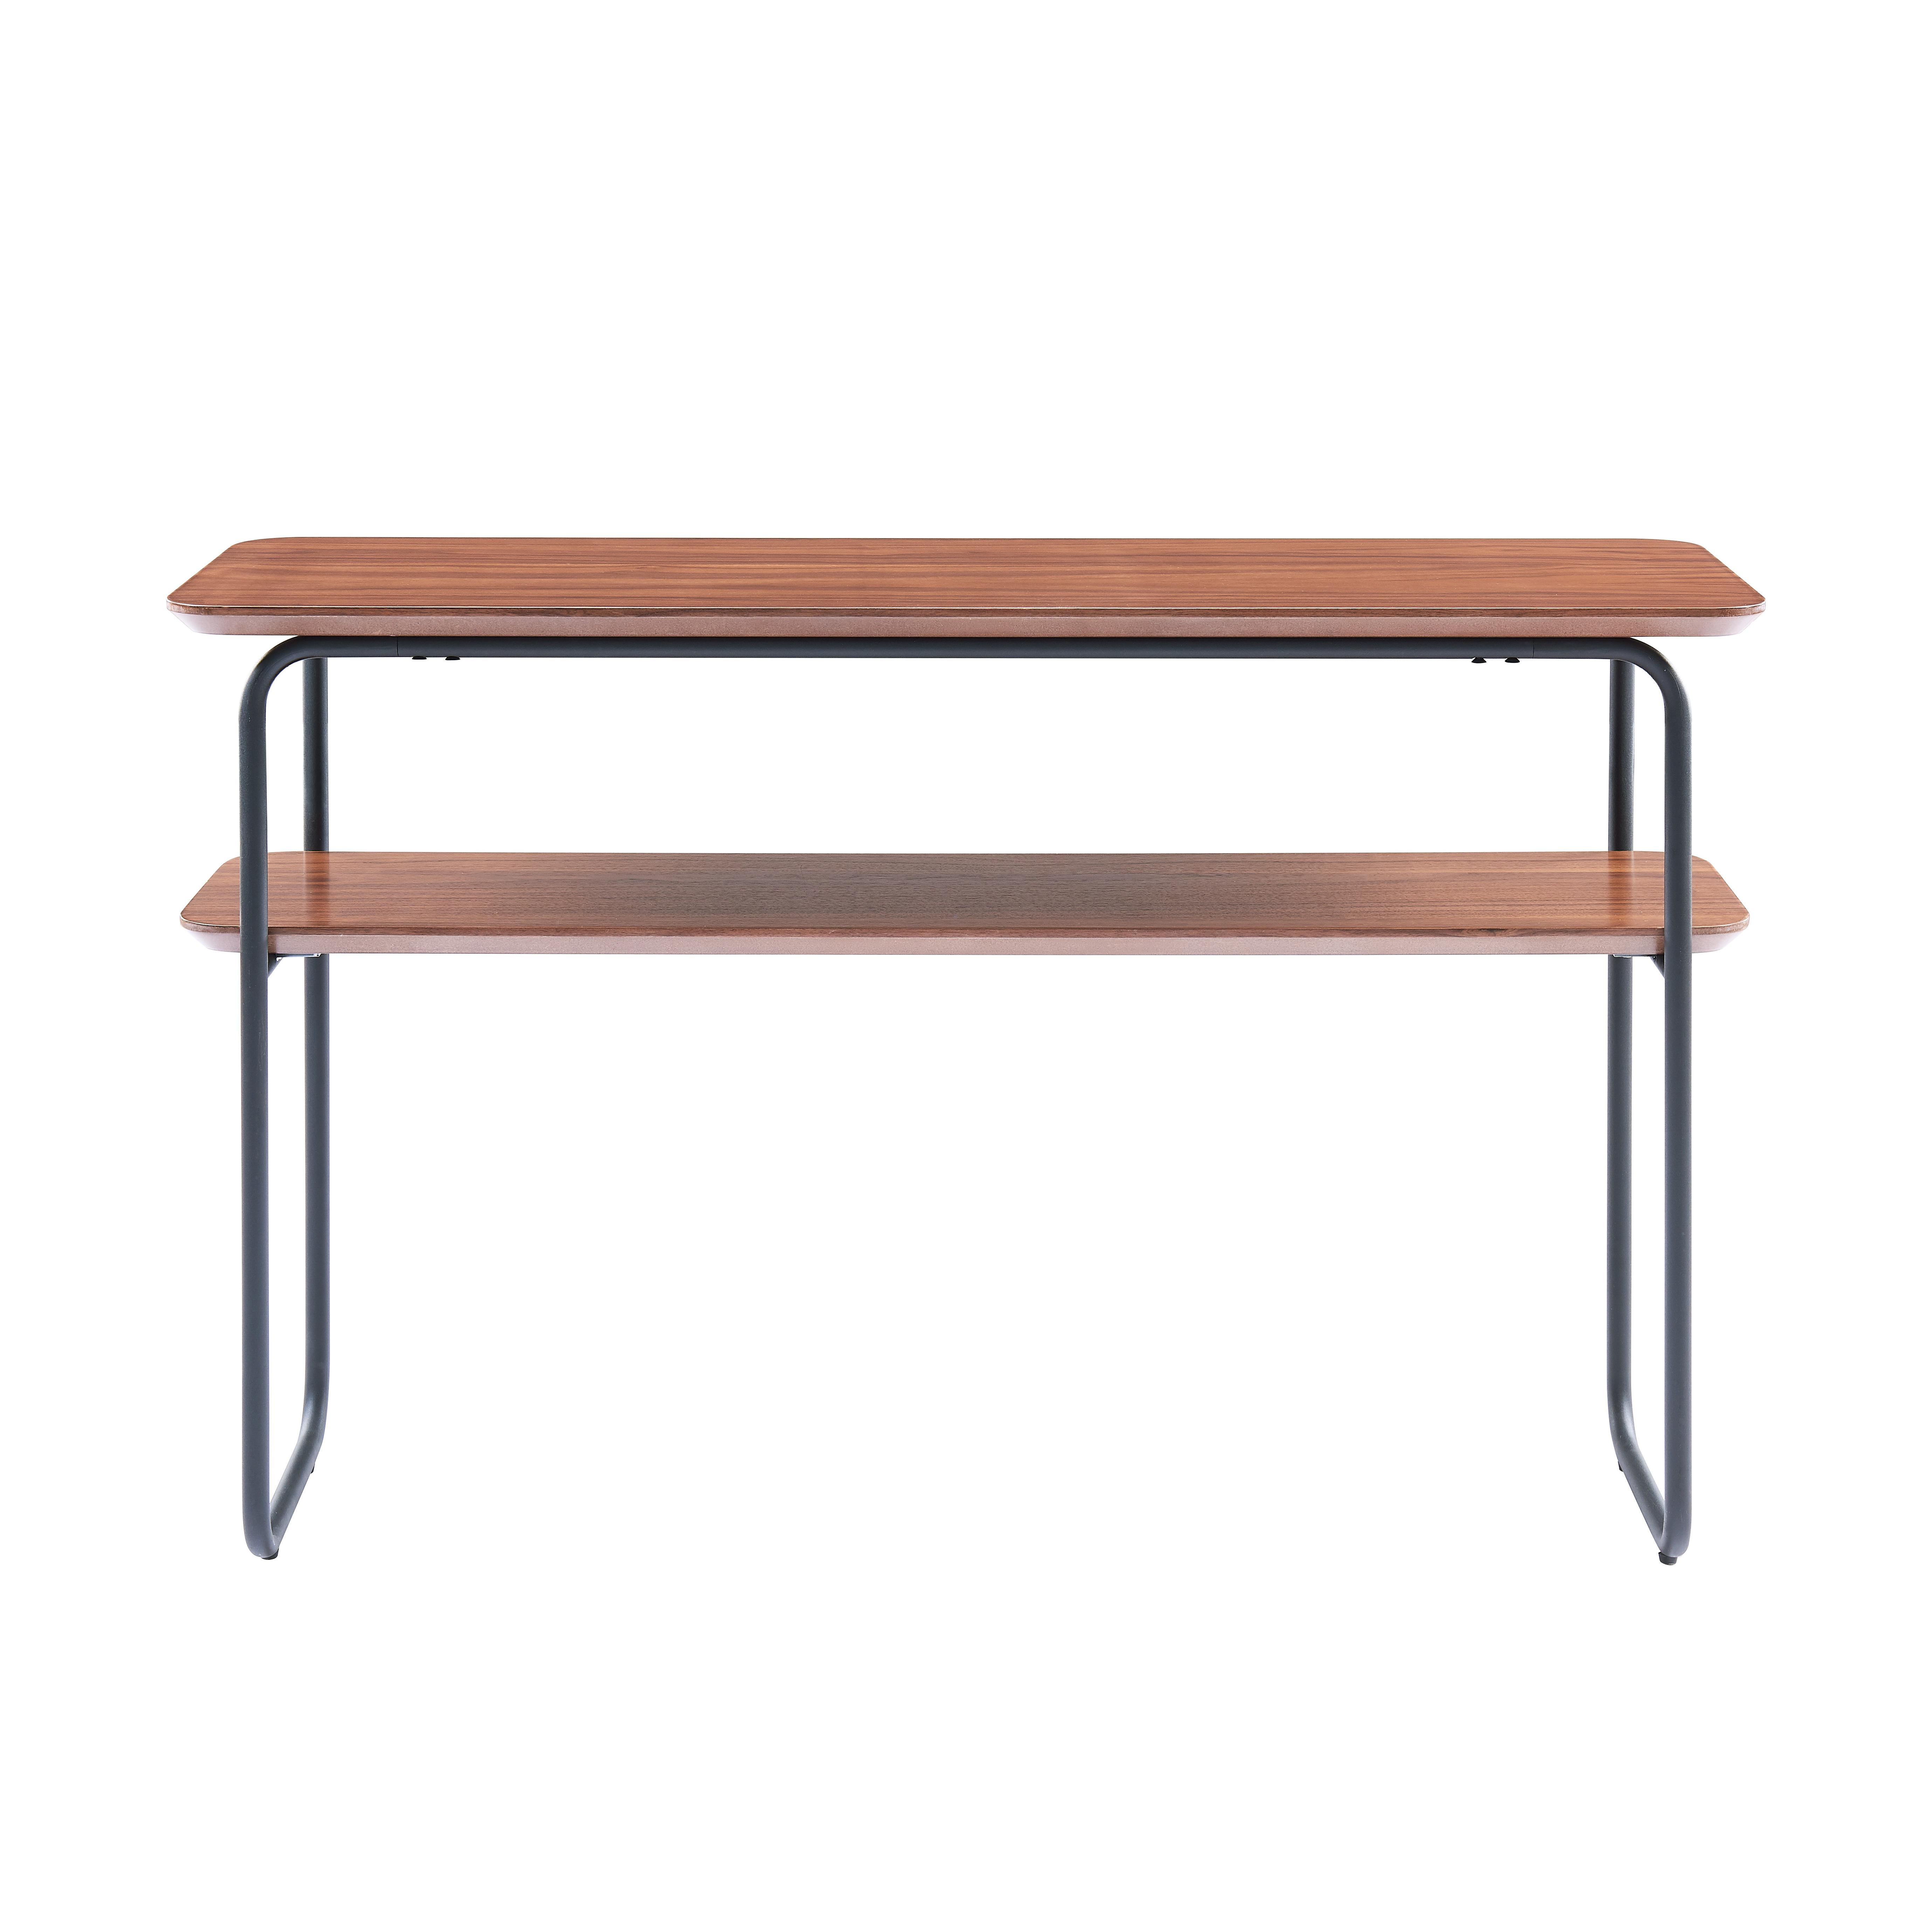 Peachy Halle Console Table Euro Style Machost Co Dining Chair Design Ideas Machostcouk